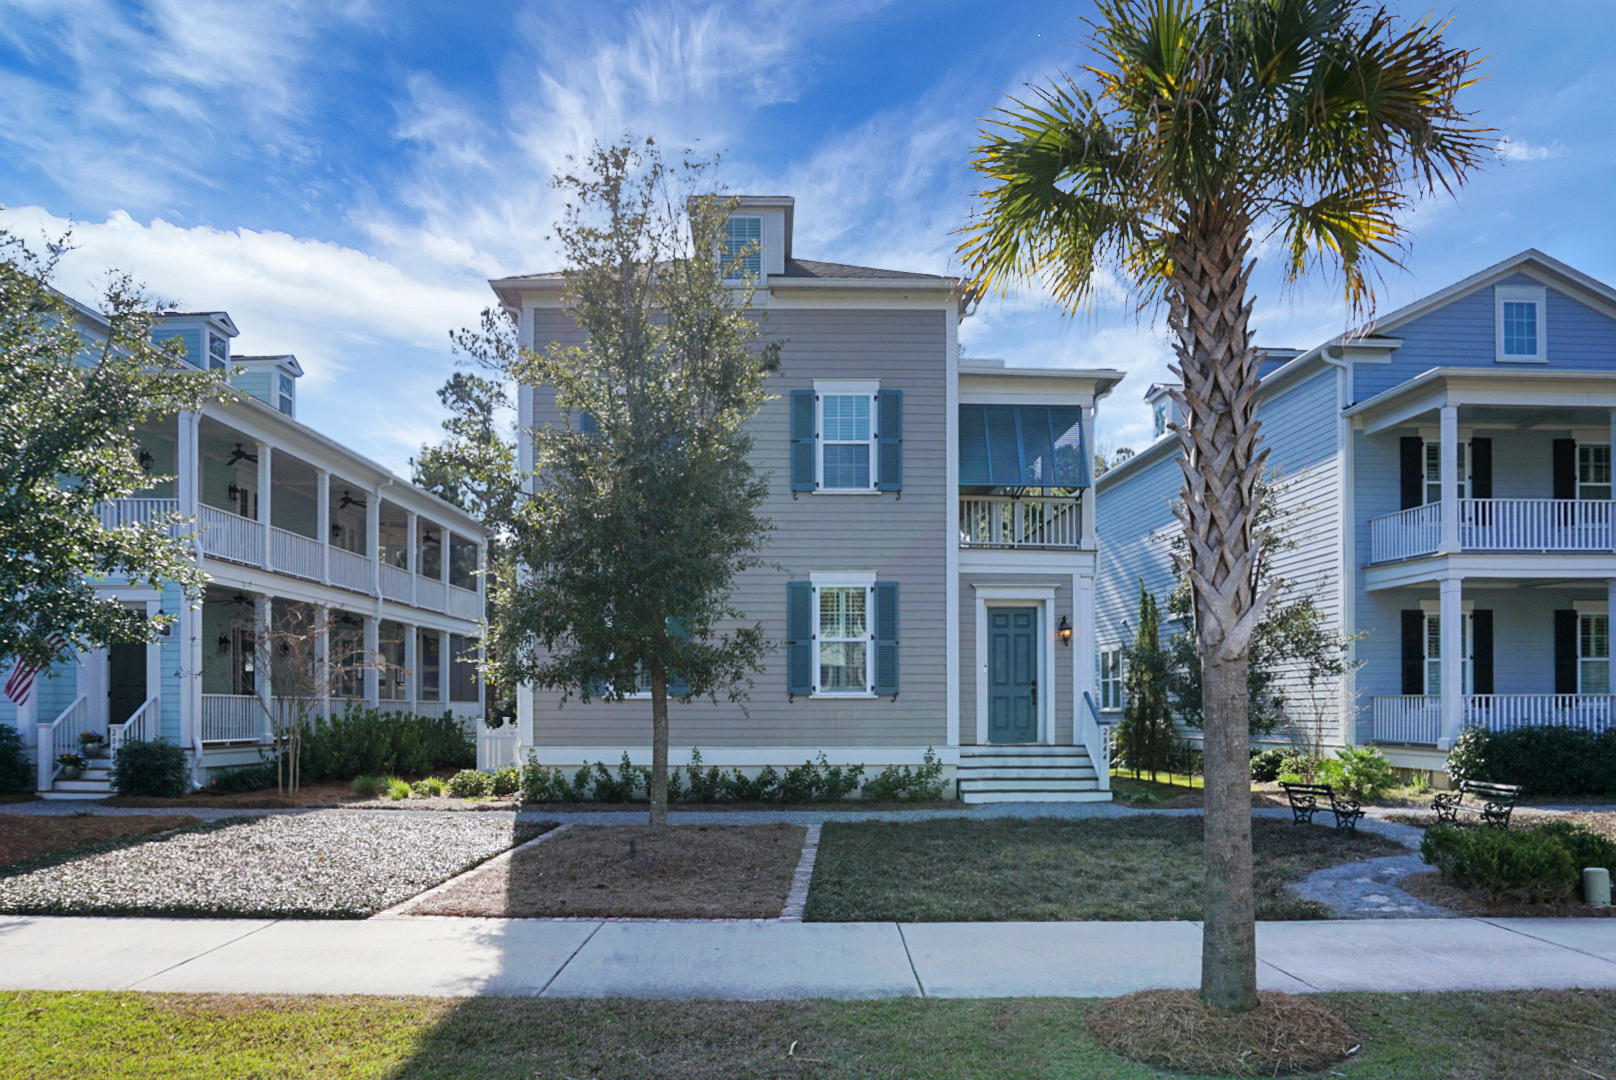 Rivertowne On The Wando Homes For Sale - 2844 Rivertowne, Mount Pleasant, SC - 15